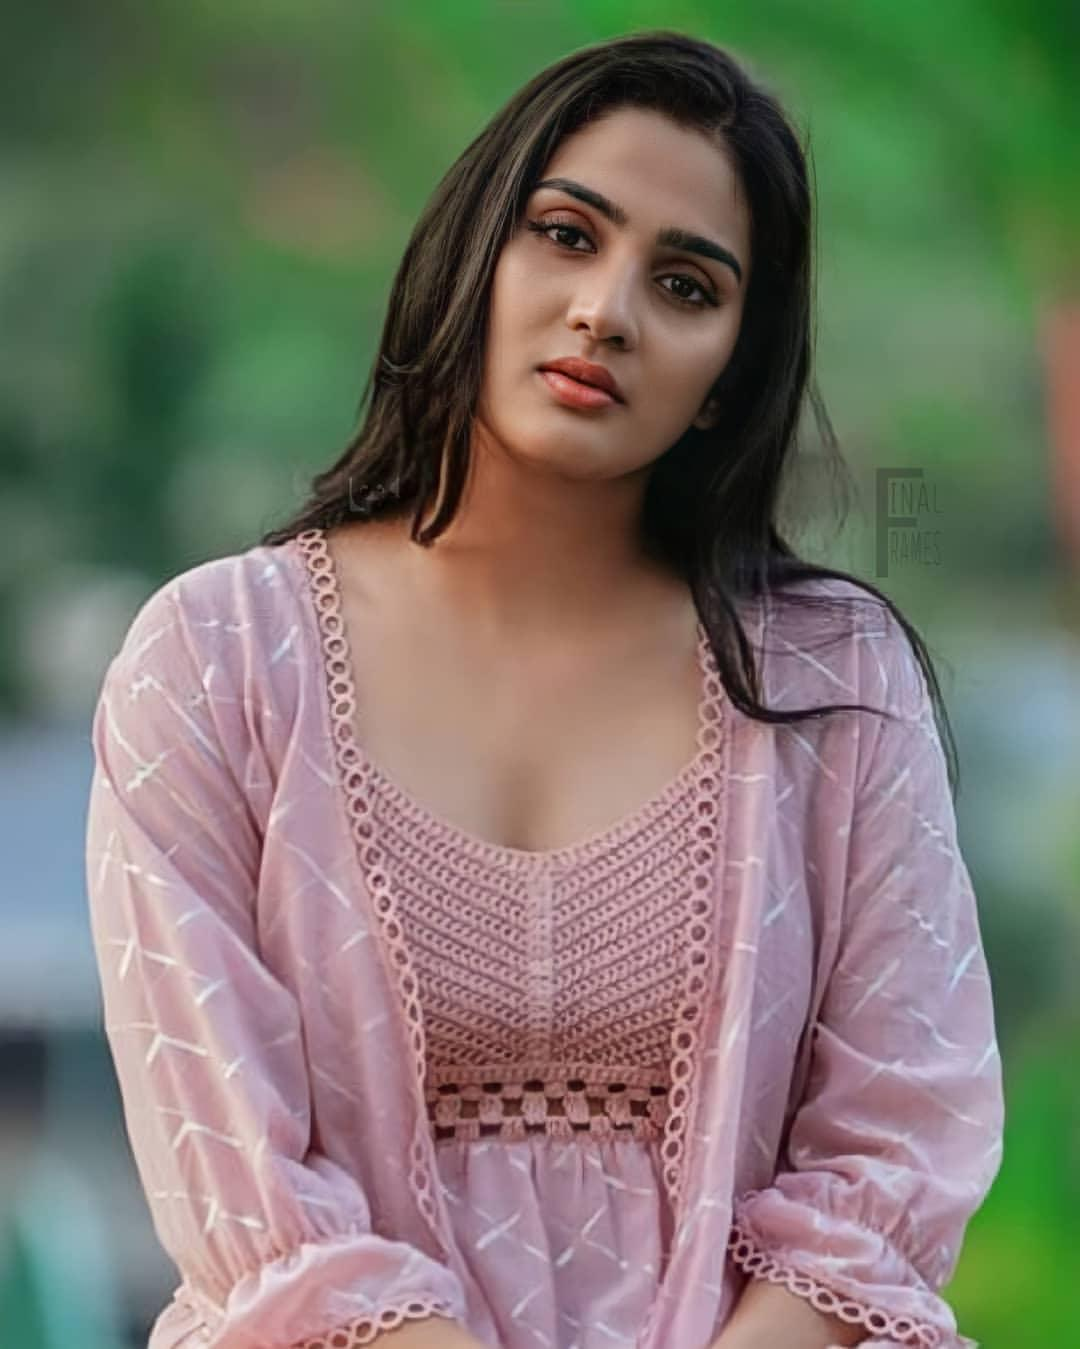 Aditi Ravi hot and sexy photoshoot | Aditi Ravi latest hot and spicy photos  Photos: HD Images, Pictures, Stills, First Look Posters of Aditi Ravi hot  and sexy photoshoot | Aditi Ravi